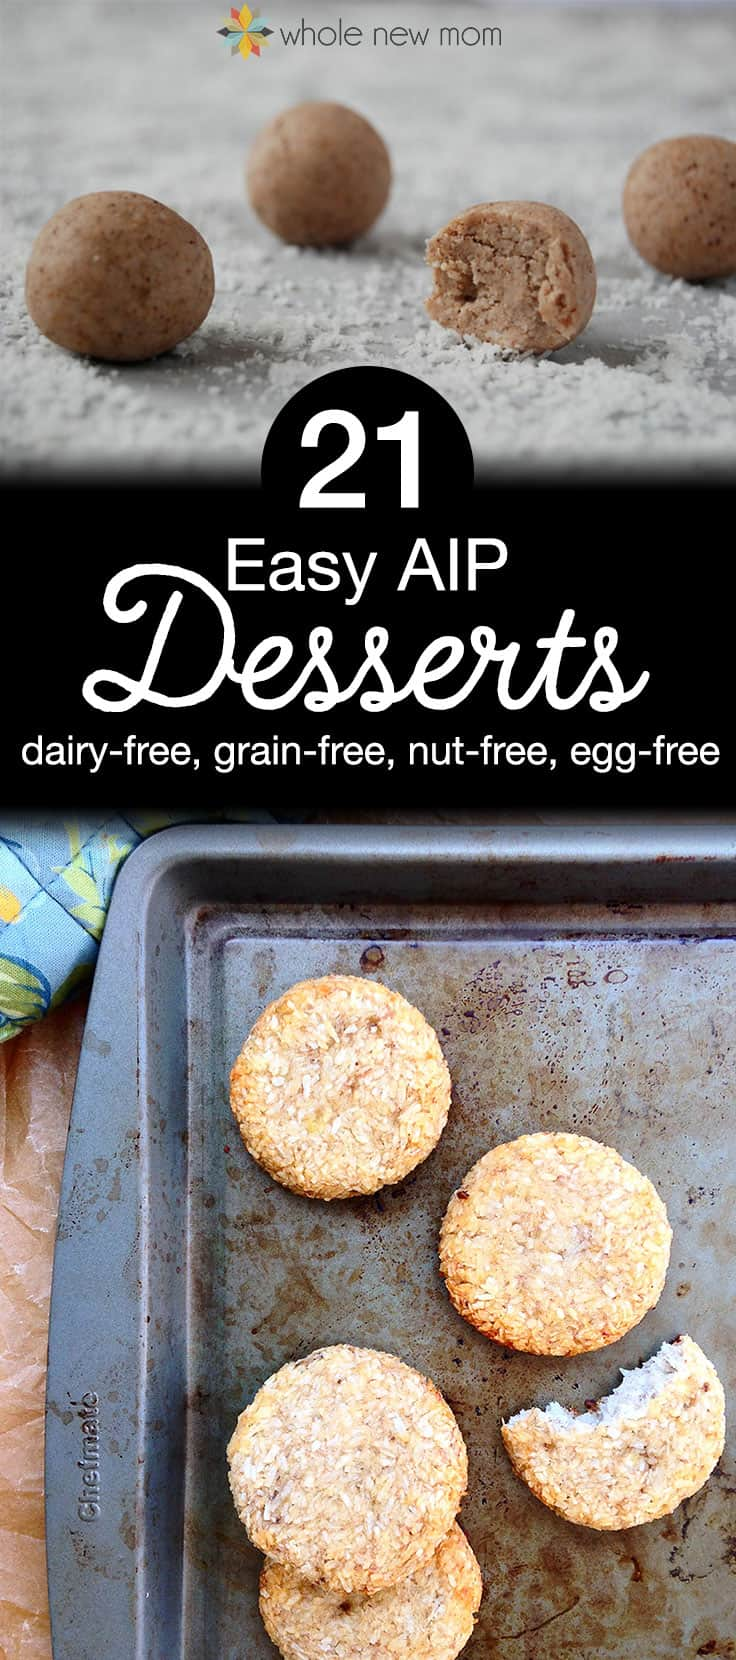 Easy AIP Desserts